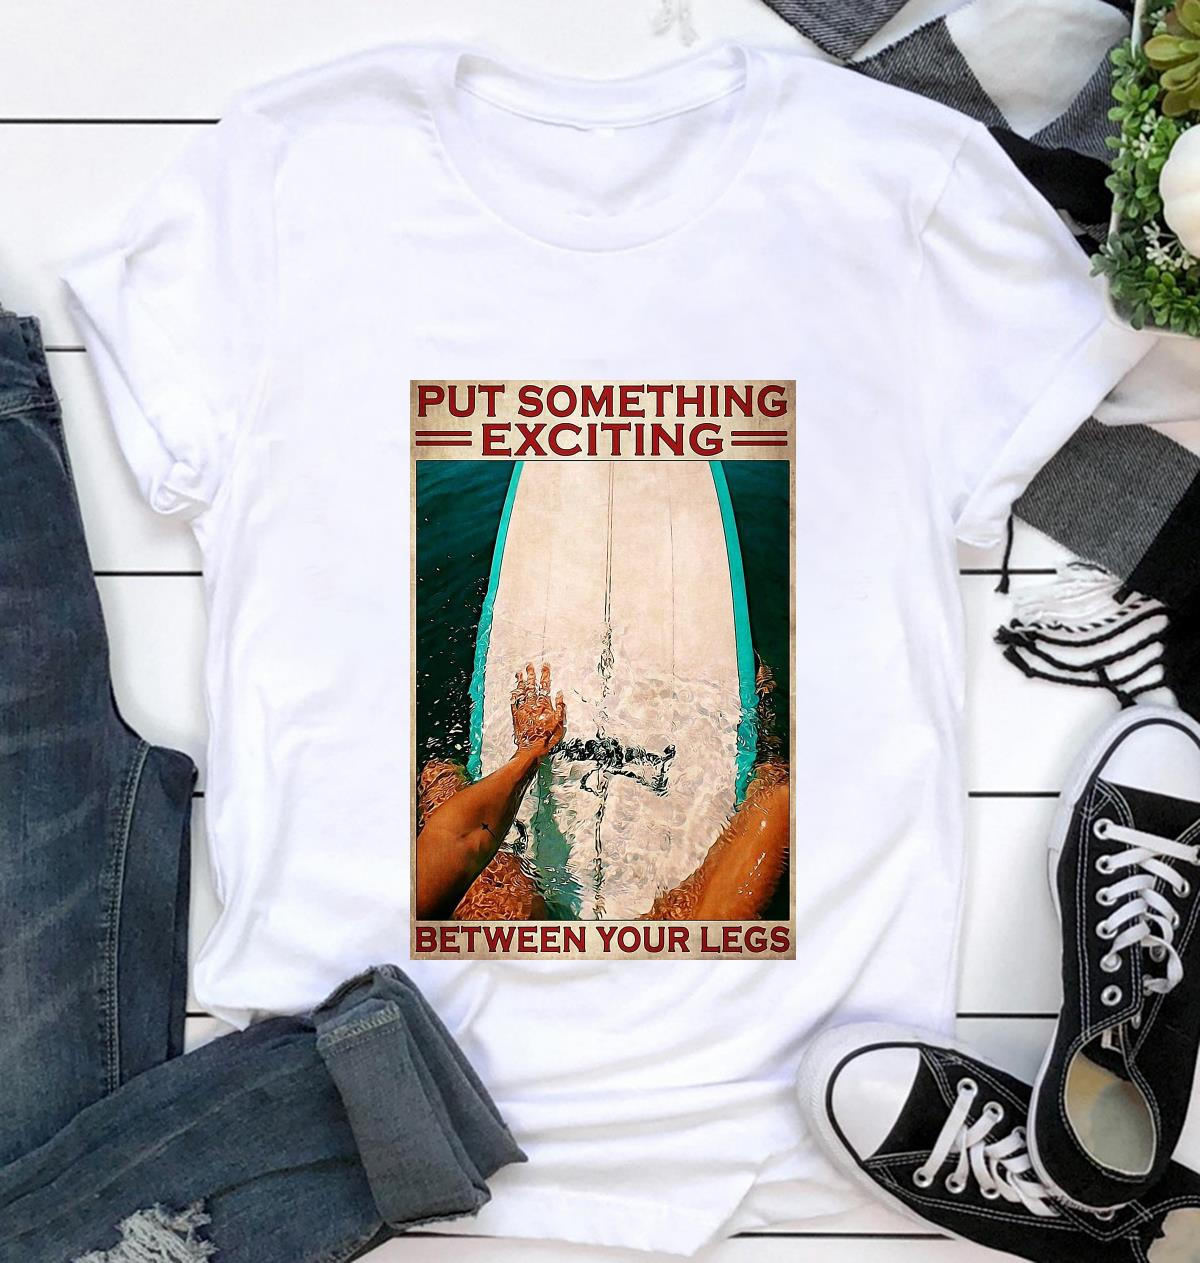 Surfing put something exciting between your legs poster canvas t-shirt